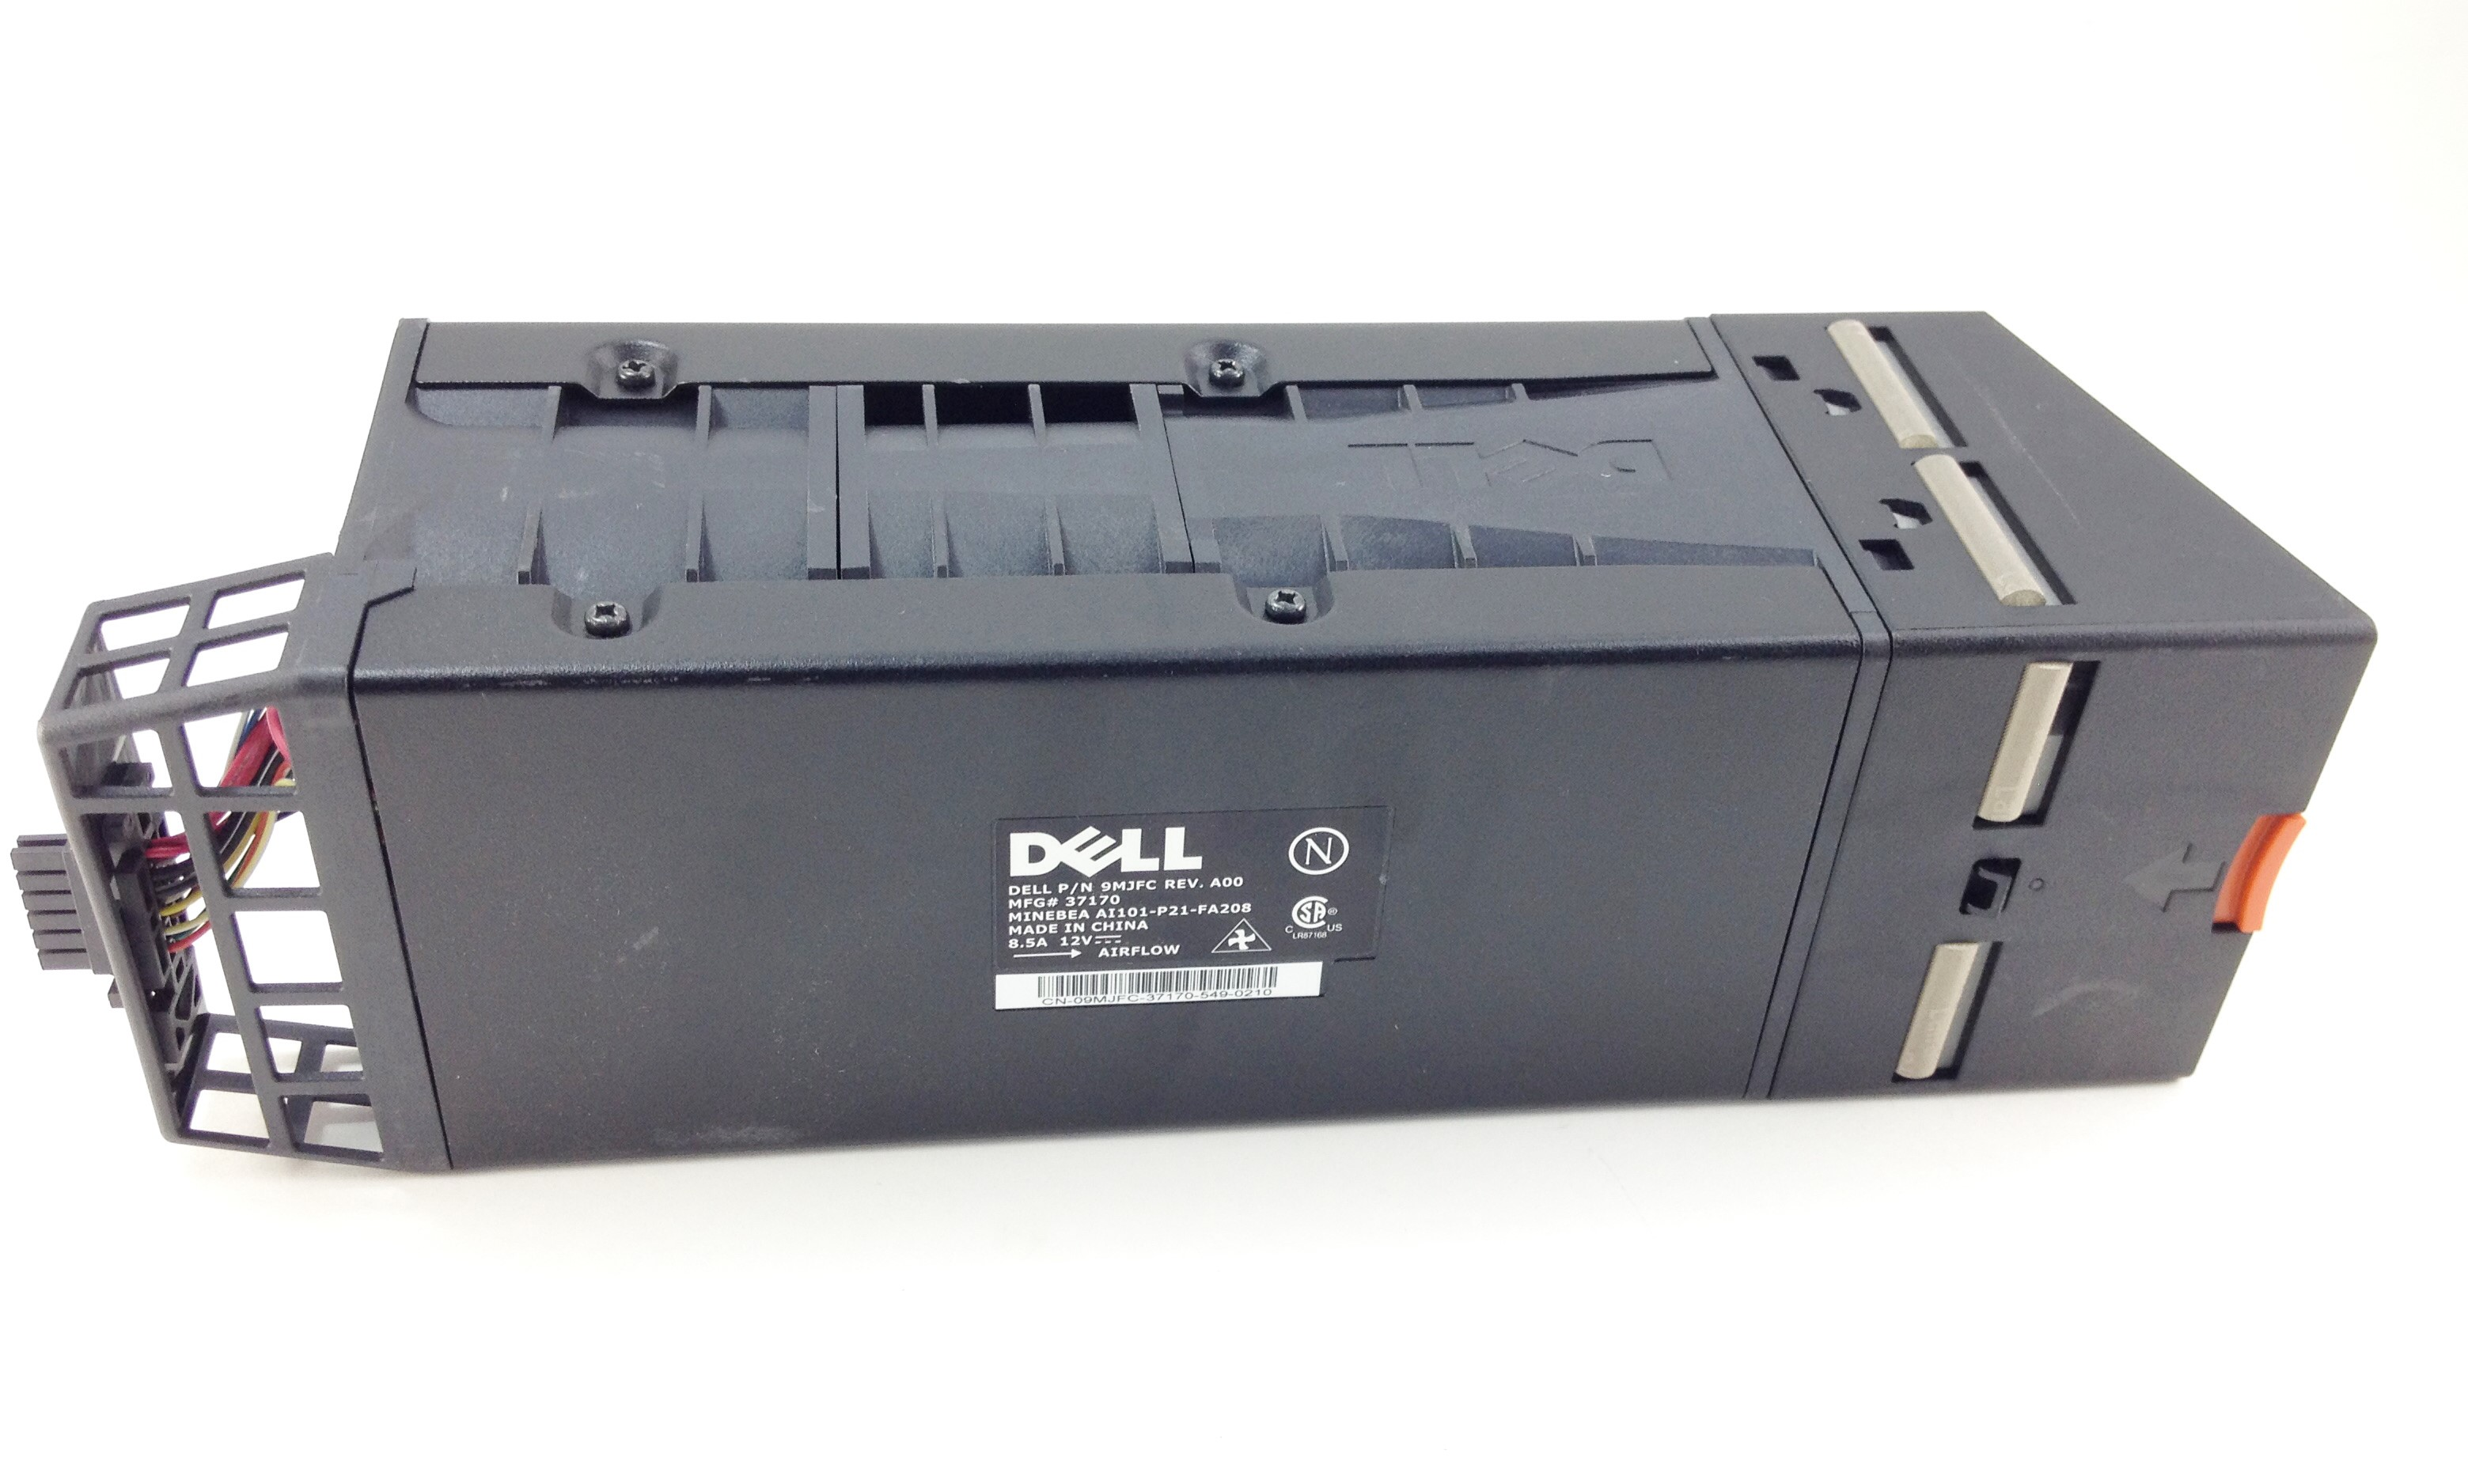 Dell PowerEdge M1000E Blade Server Fan Assembly Module (9MJFC)